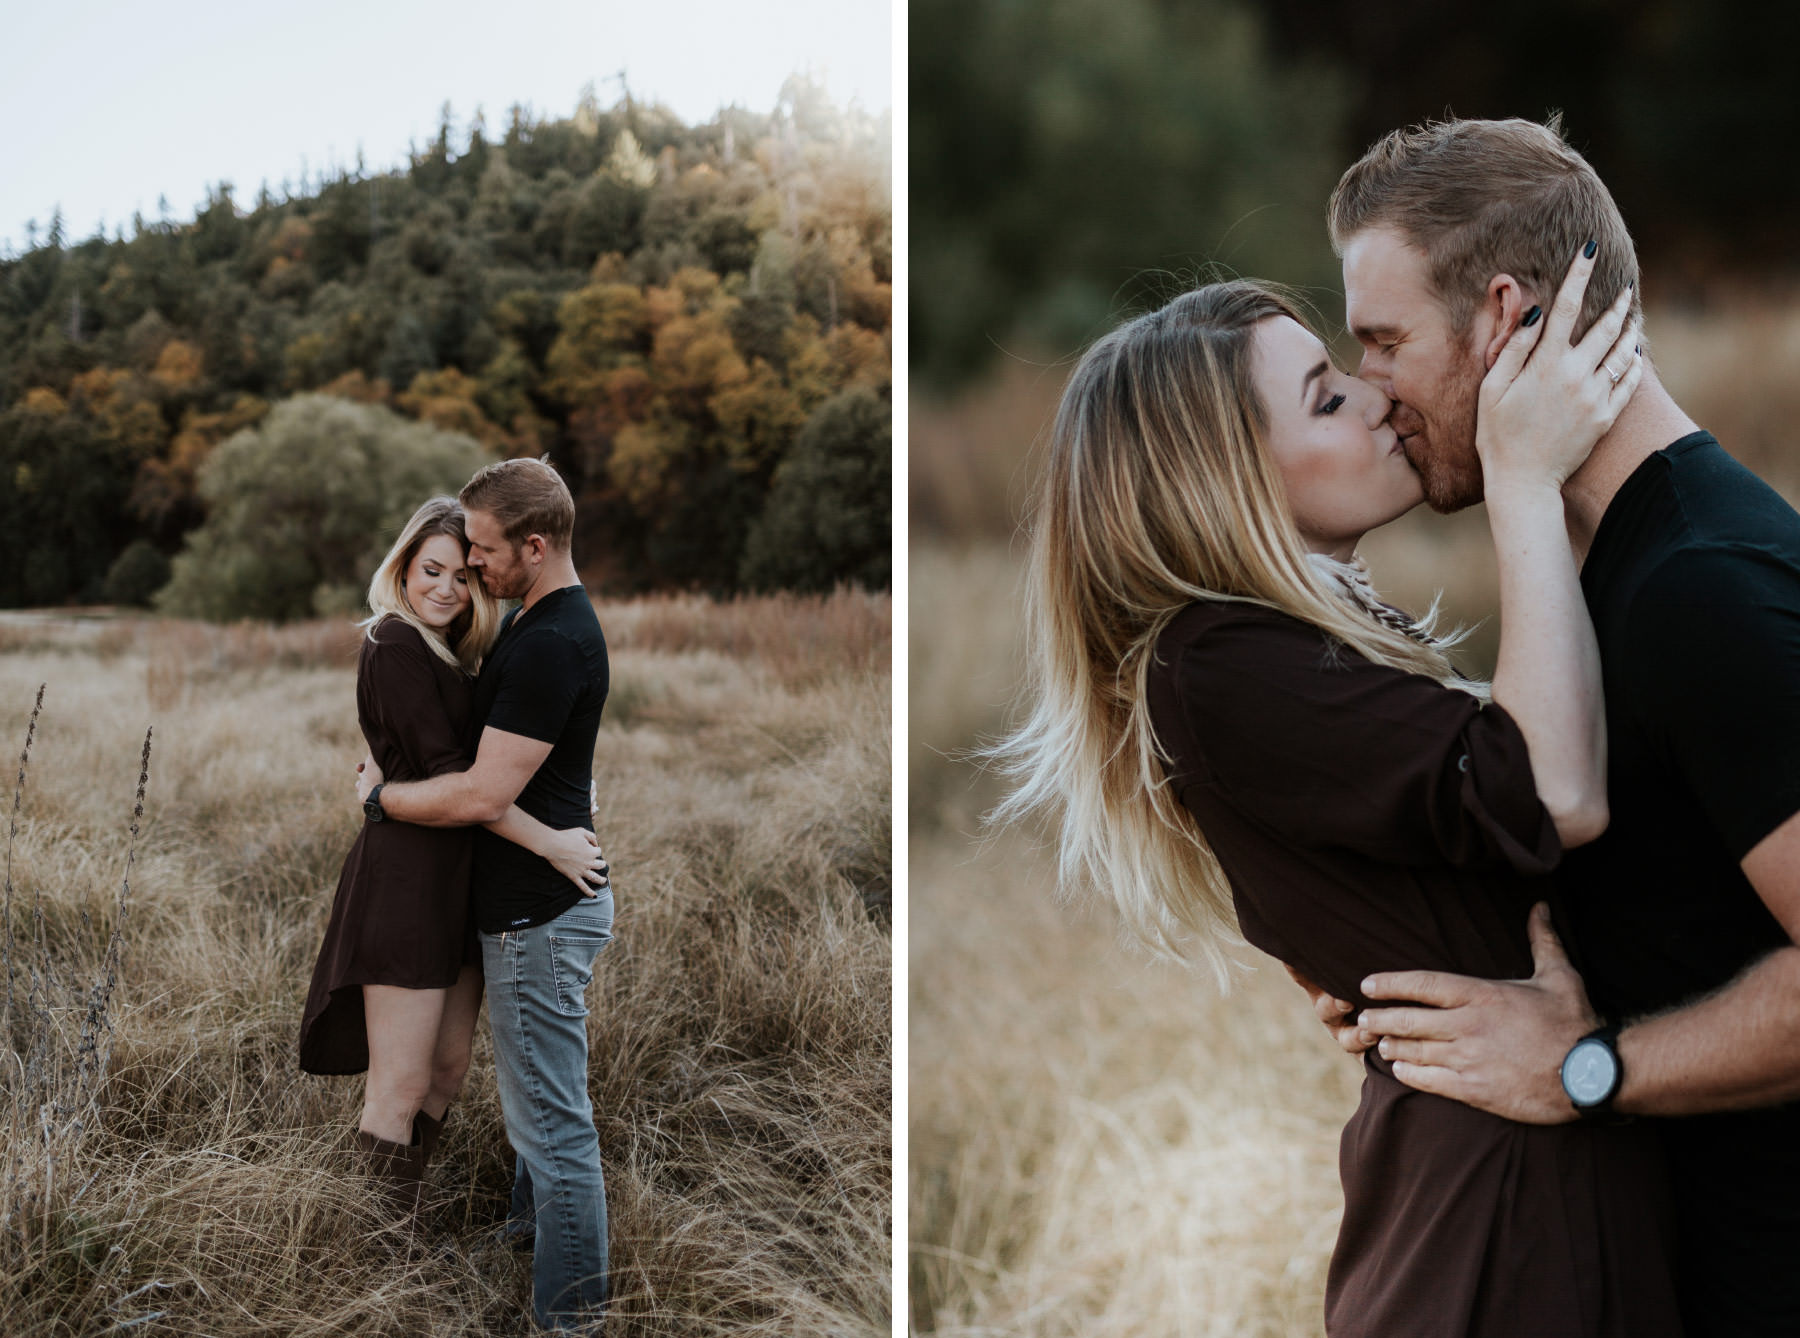 Couple kissing at Palomar Mountain with fall colored trees in the background